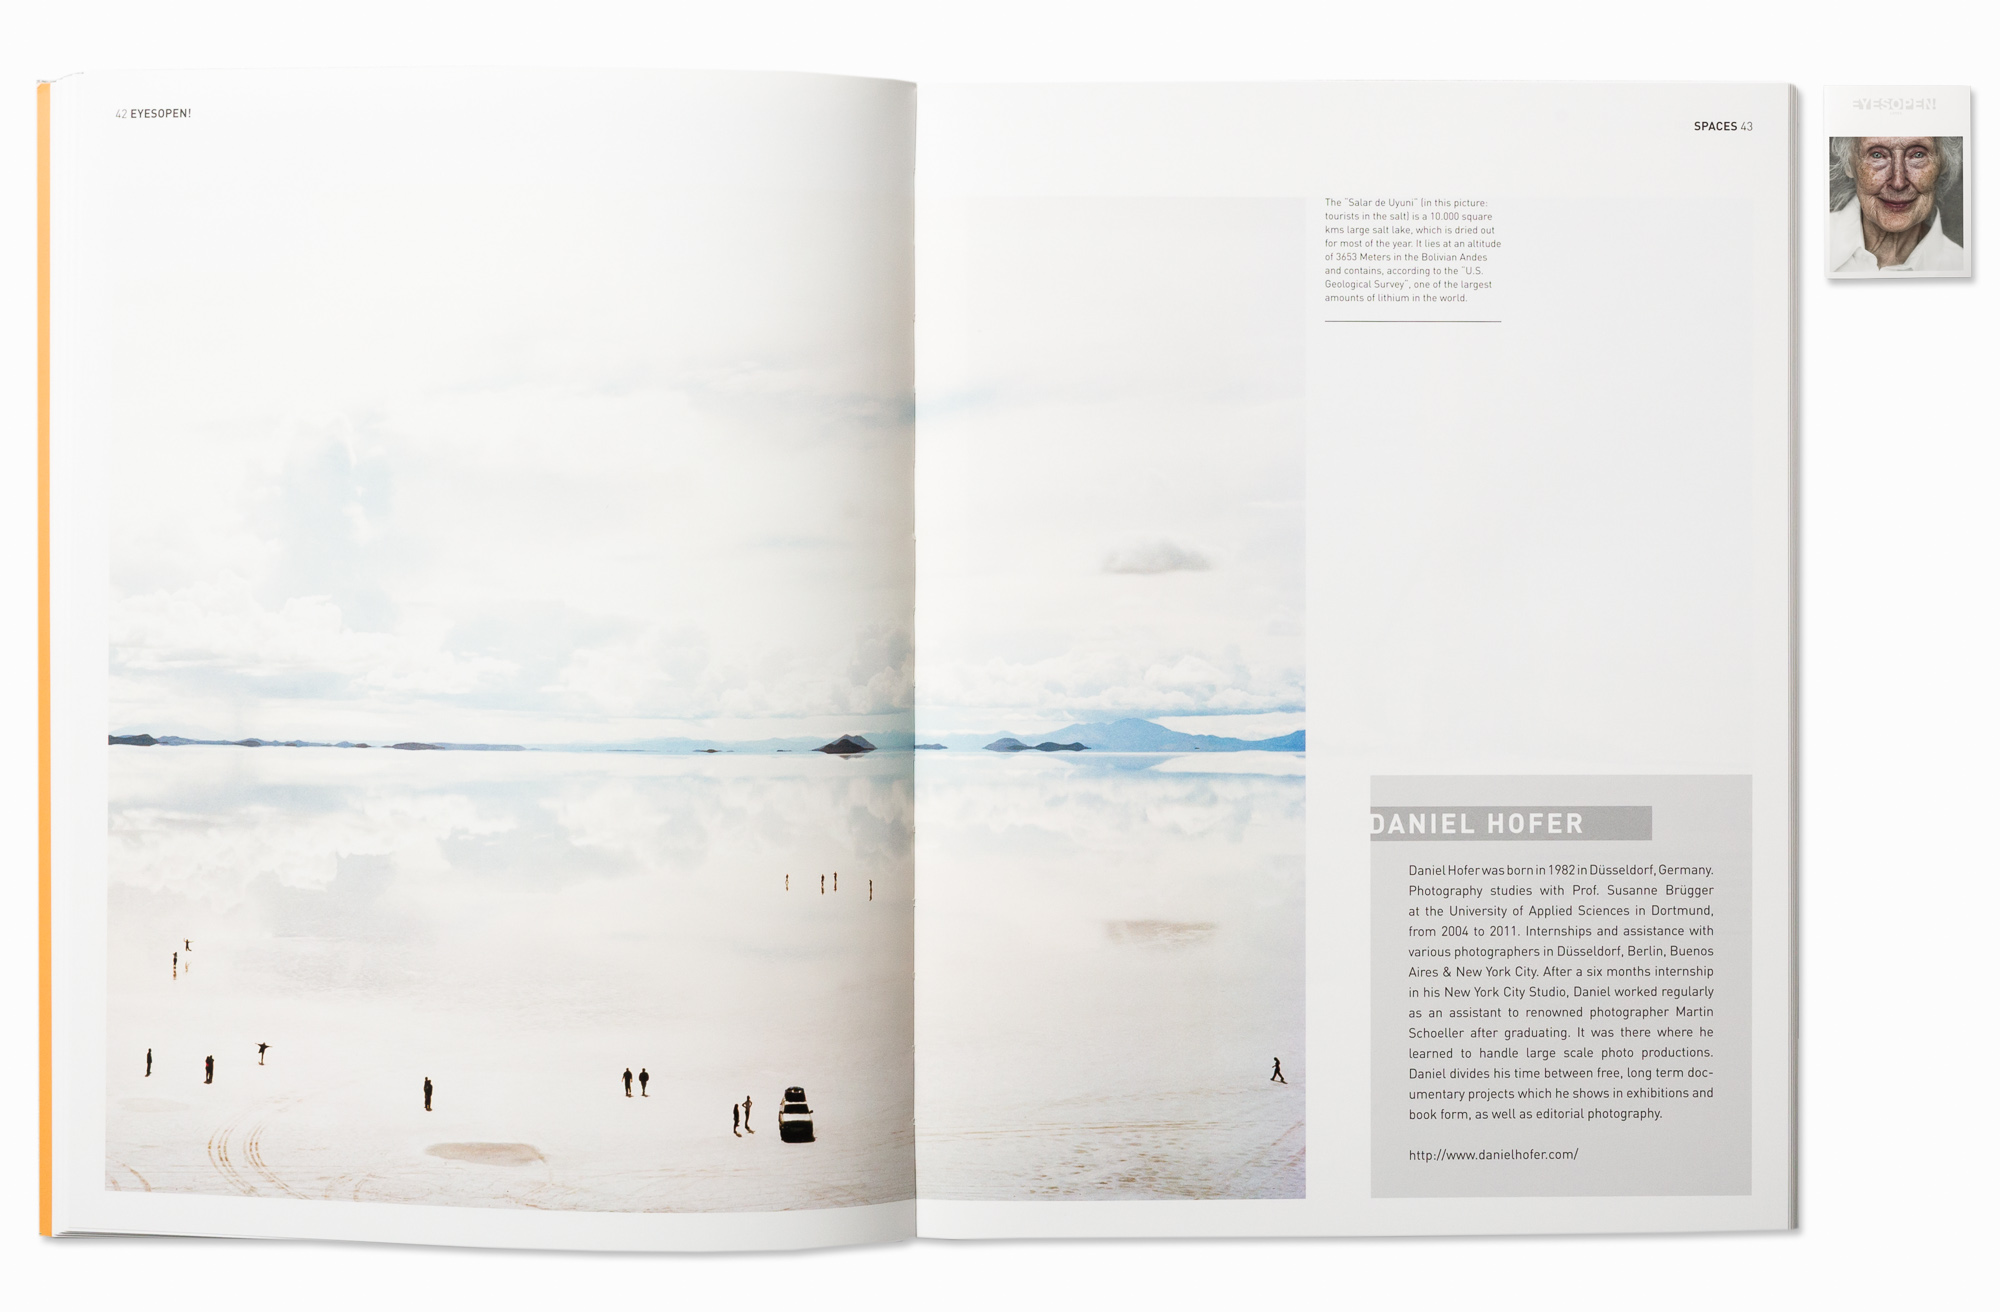 SALAR series published in Eyes Open magazine (Italy), 2014